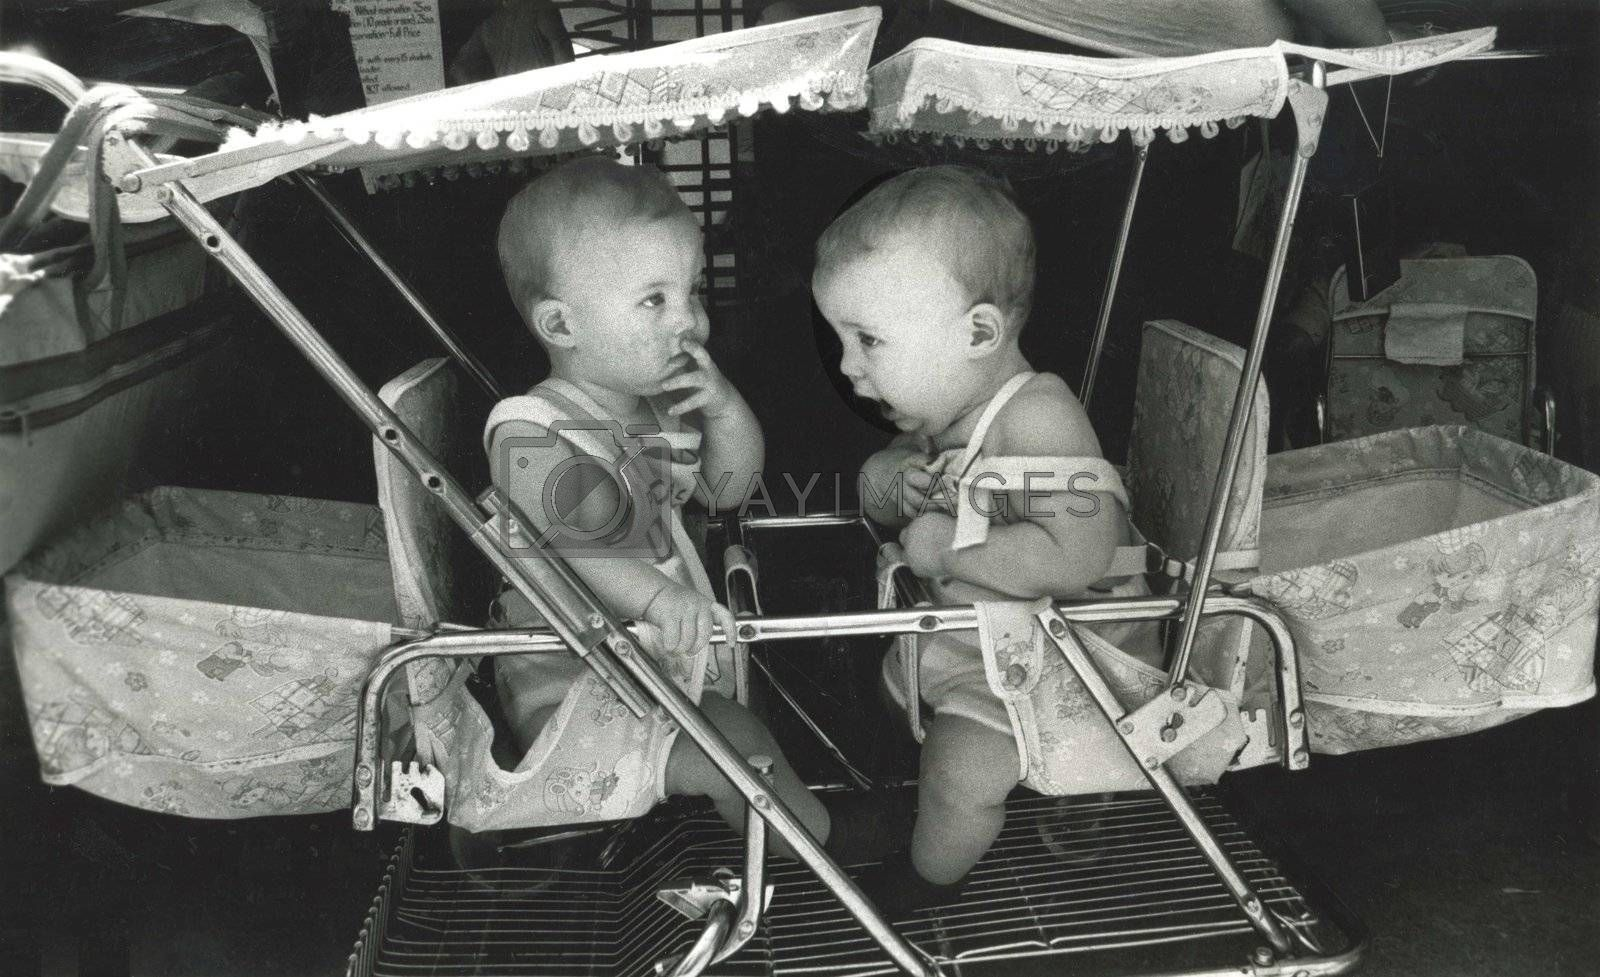 Twins at a twin festival in Little Rock, Arkansas in 1975